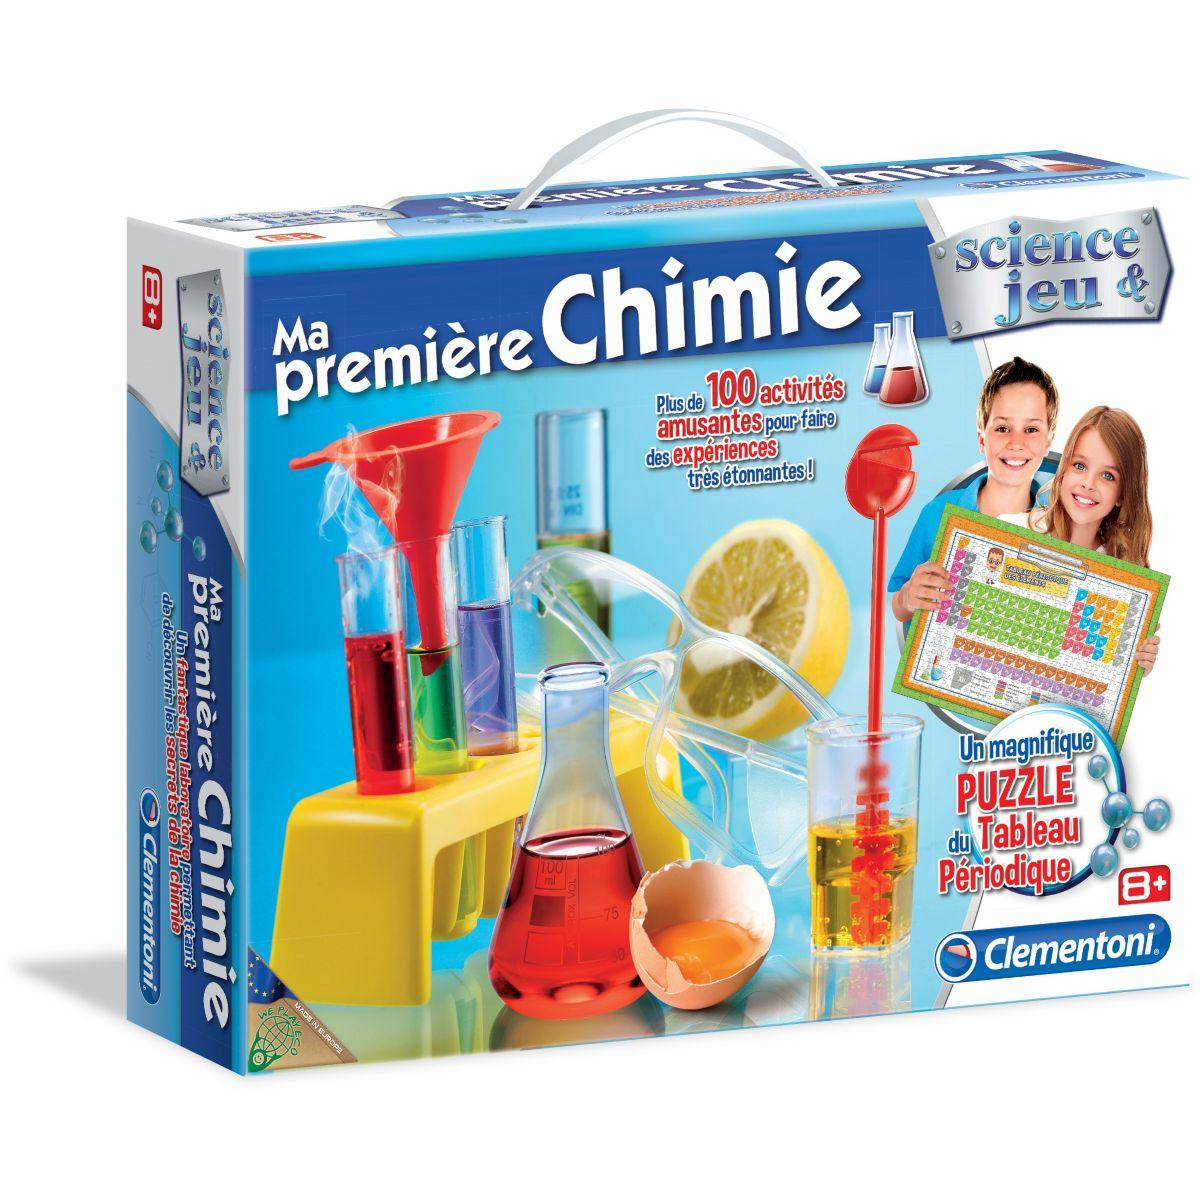 Jeu �ducatif clementoni ma premi�re chimie - 2% de remise imm�diate avec le code : deal2 (photo)